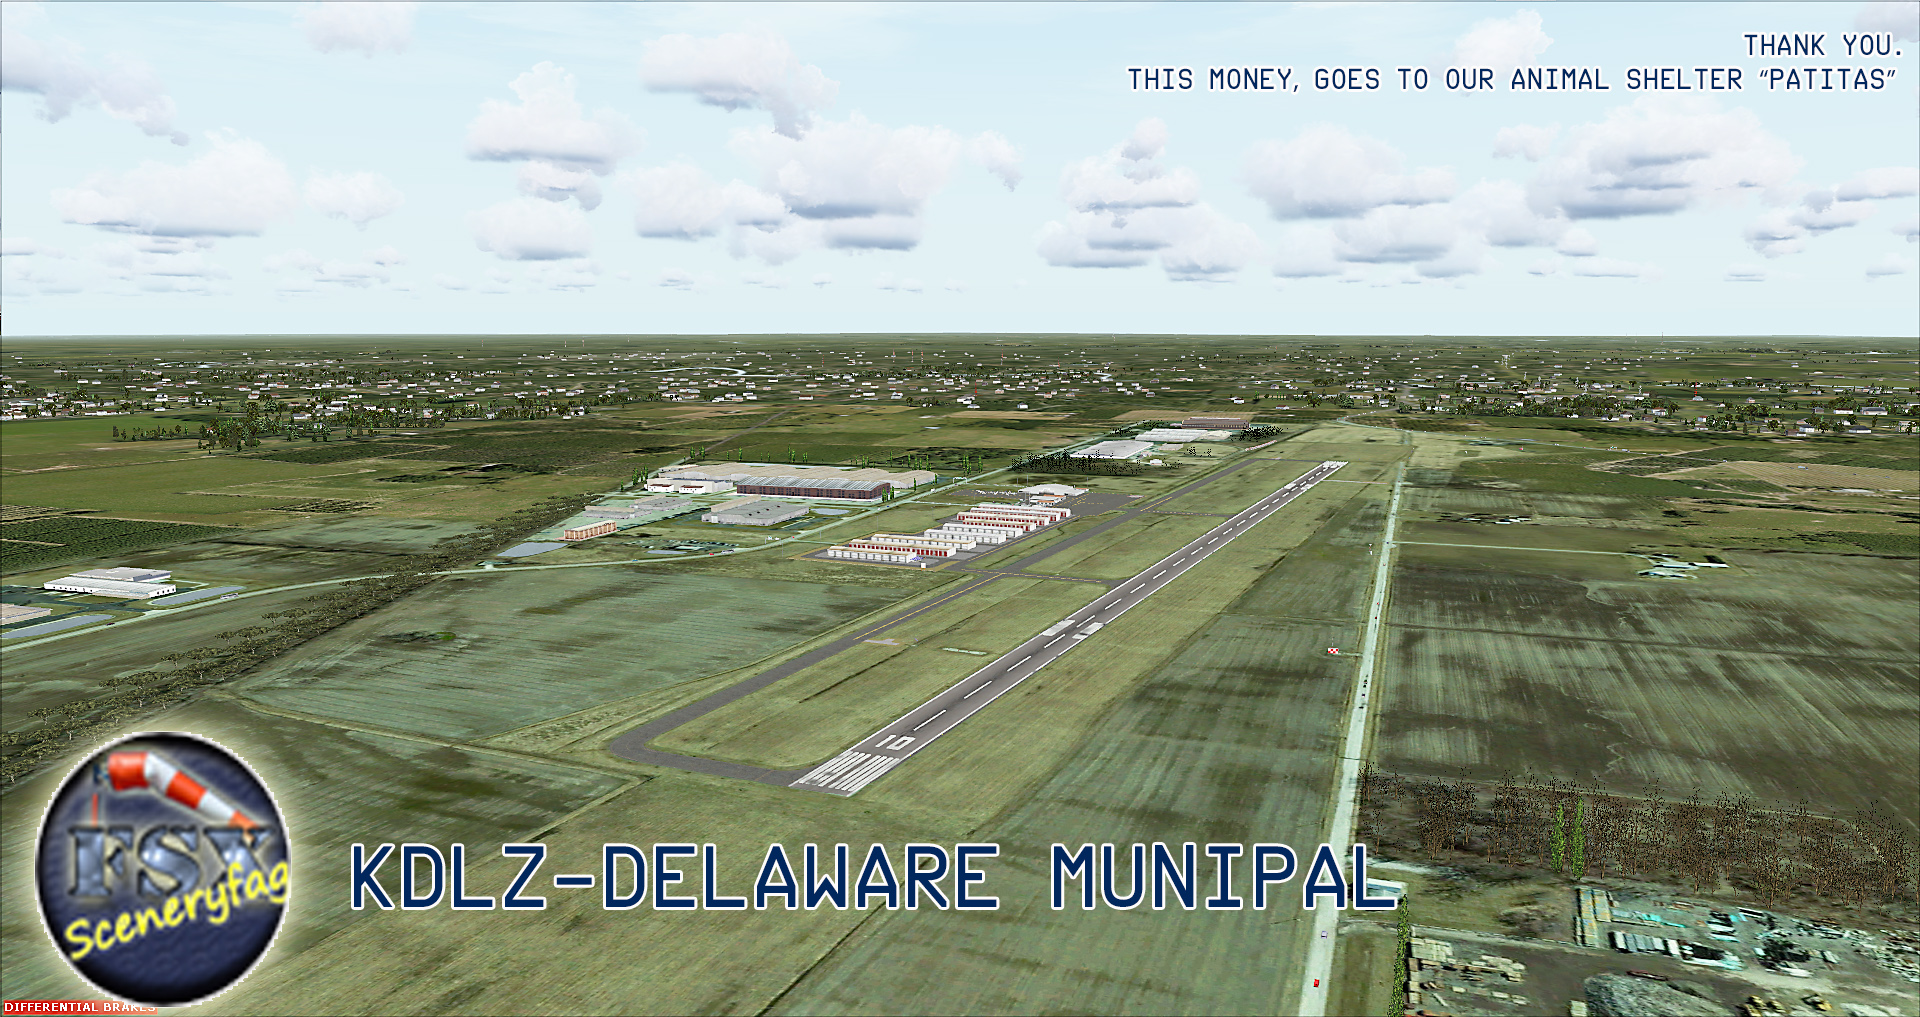 FSXCENERY - KDLZ DELAWARE MUNIPAL- OH17 AUGUST ACRES FSX